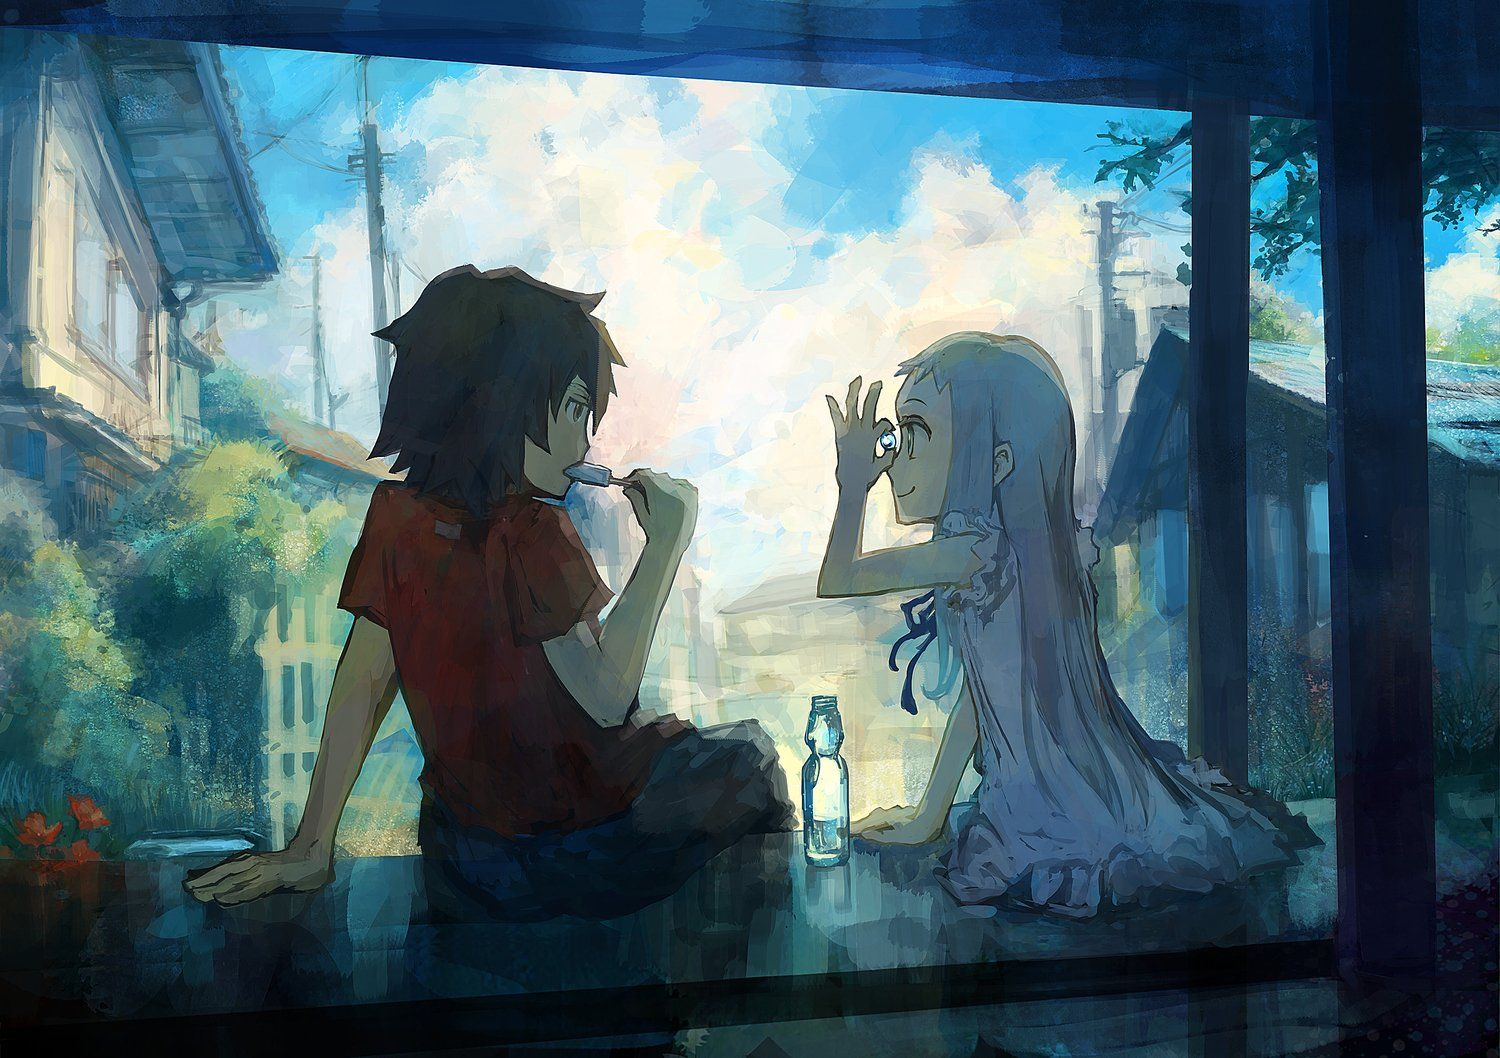 A picture of the characters Meiko and Jinta from the anime Anohana.